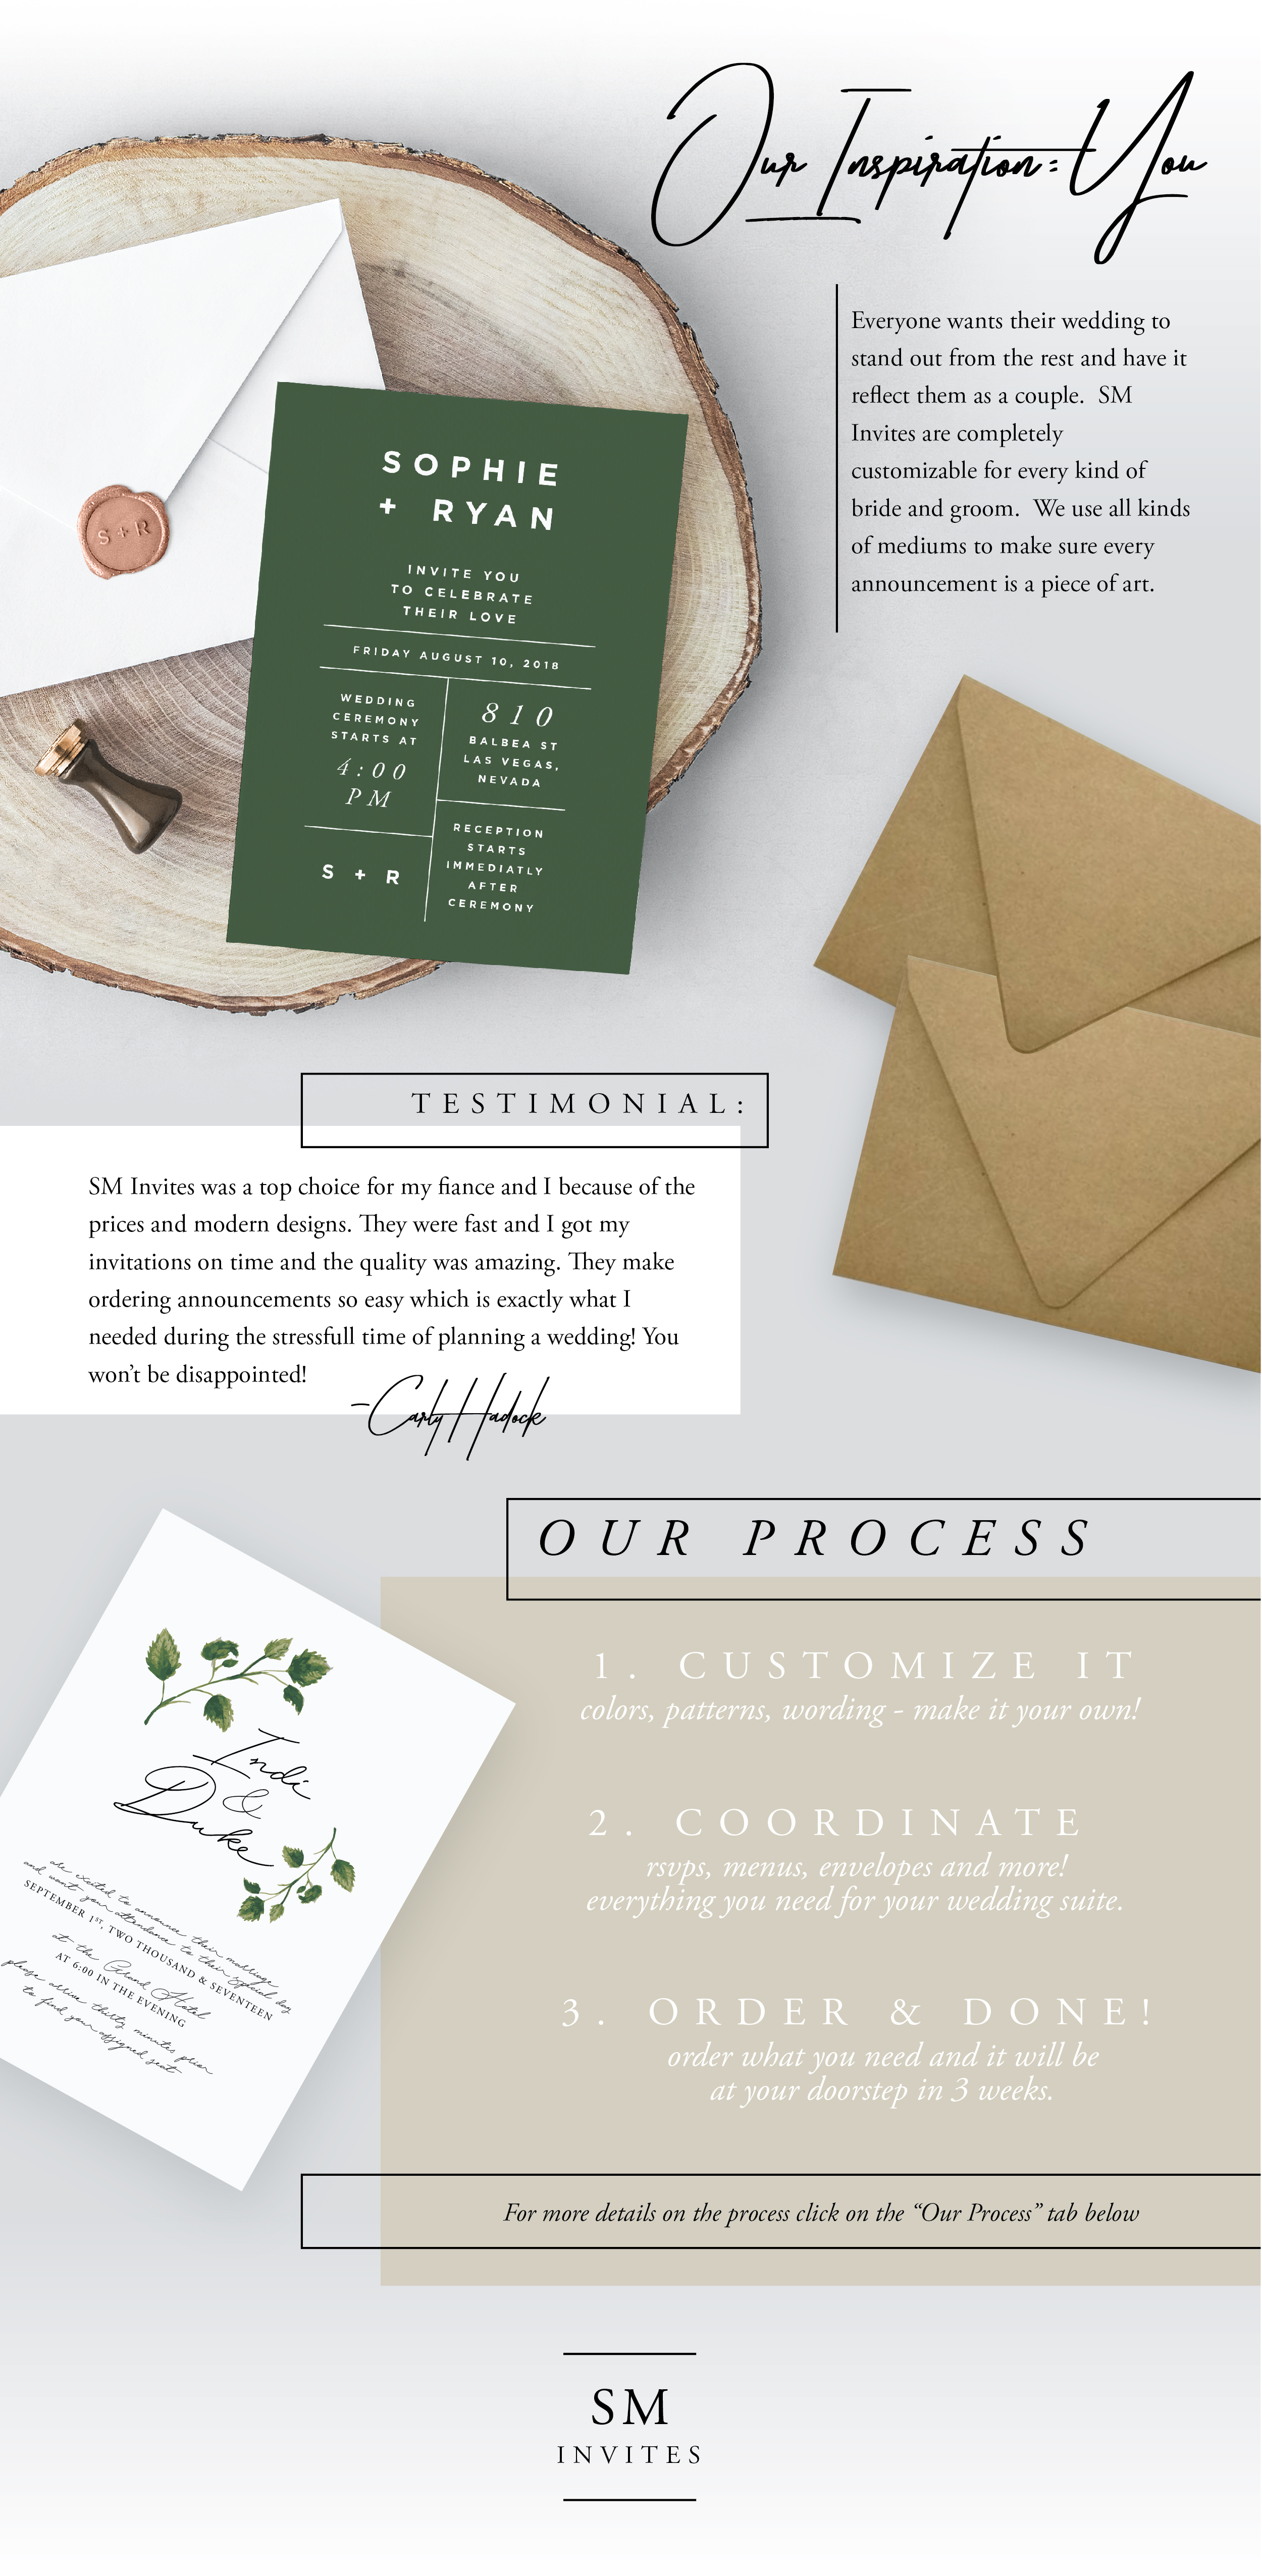 SM Invites Wedding Invitations Utah America